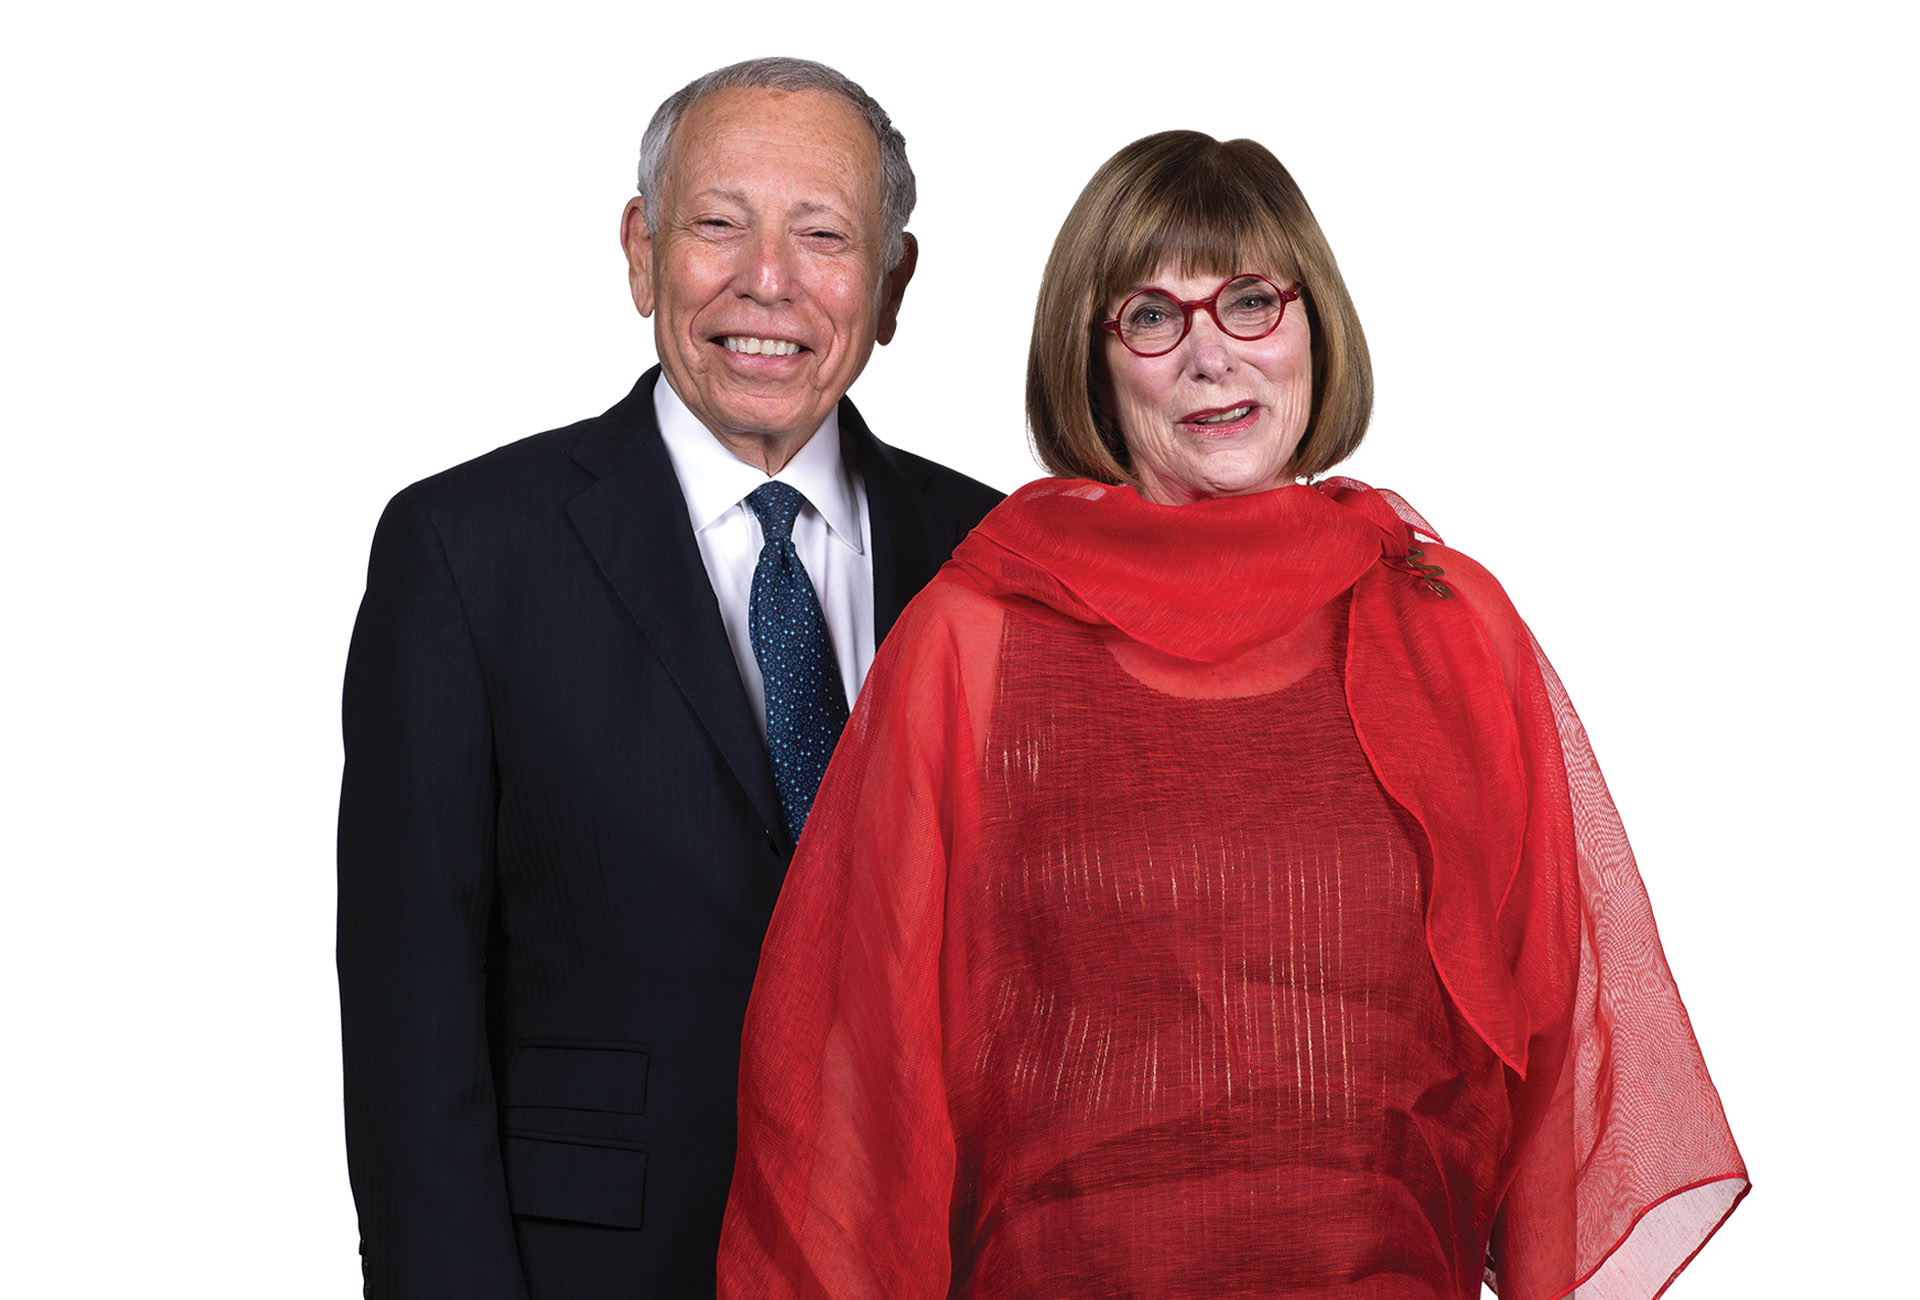 Jeanne and Michael Klein